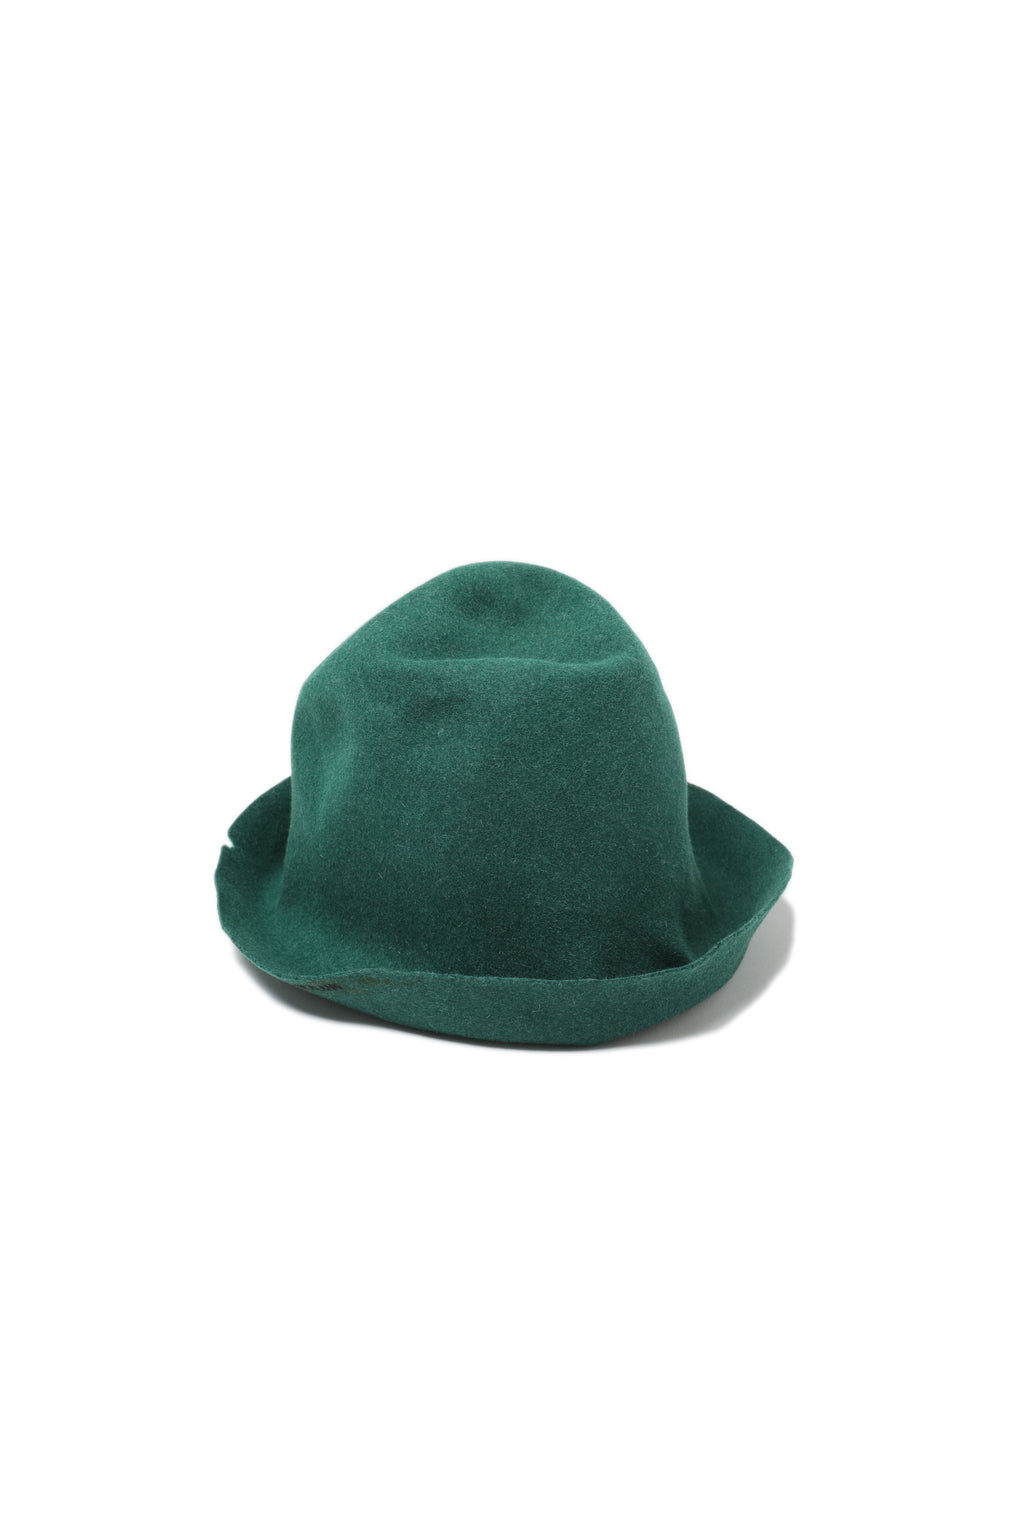 REINHARD PLANK HATS - Green